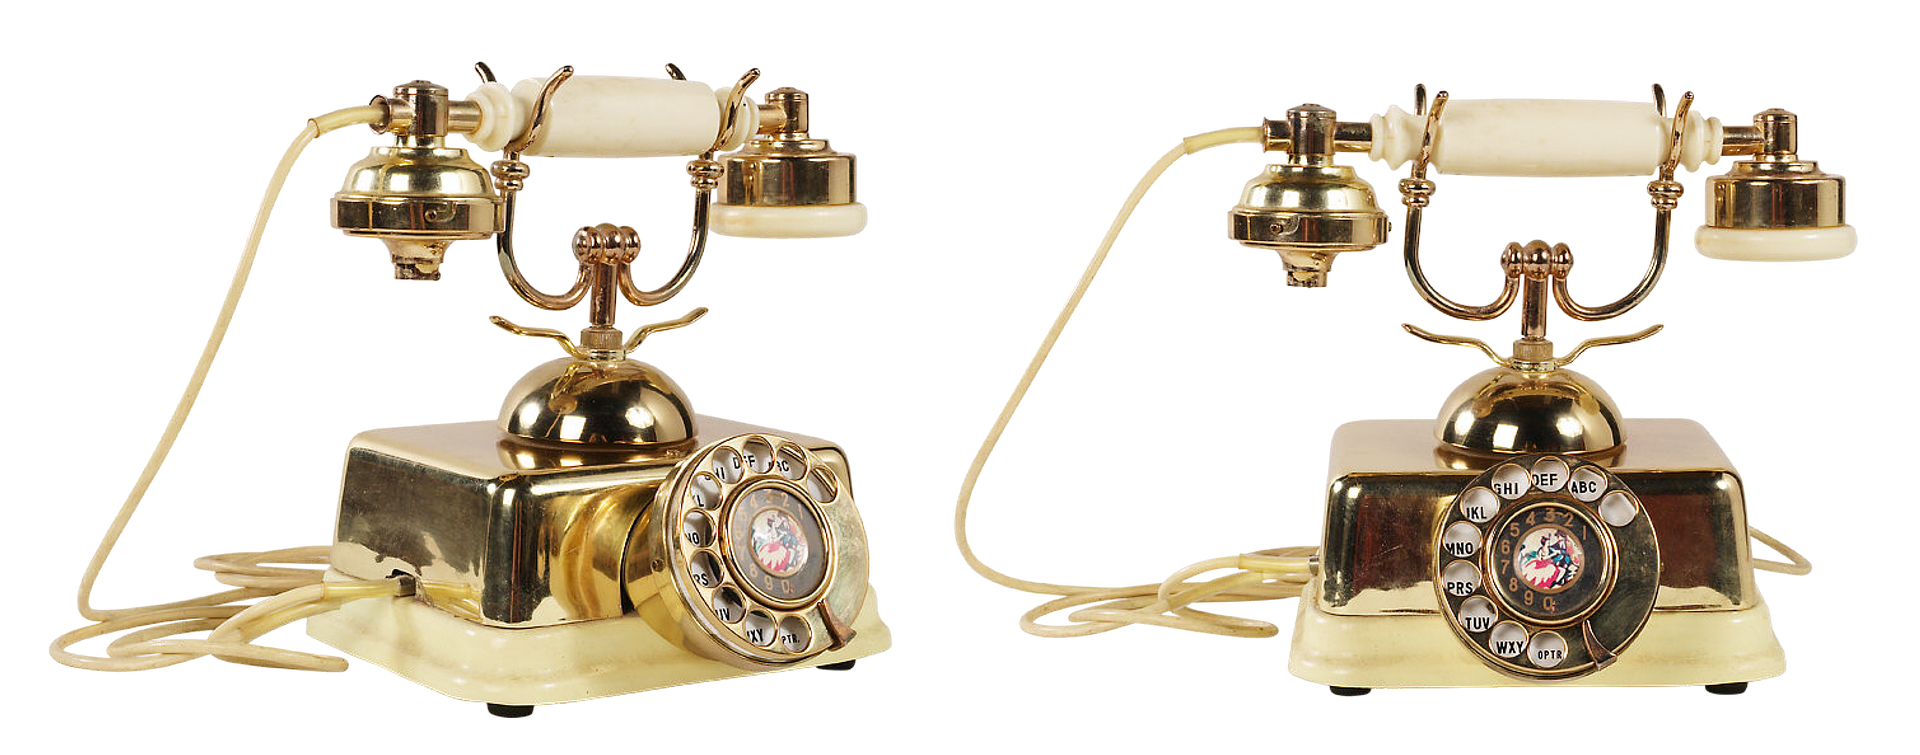 Phone for keeping in touch with clients - Telesales